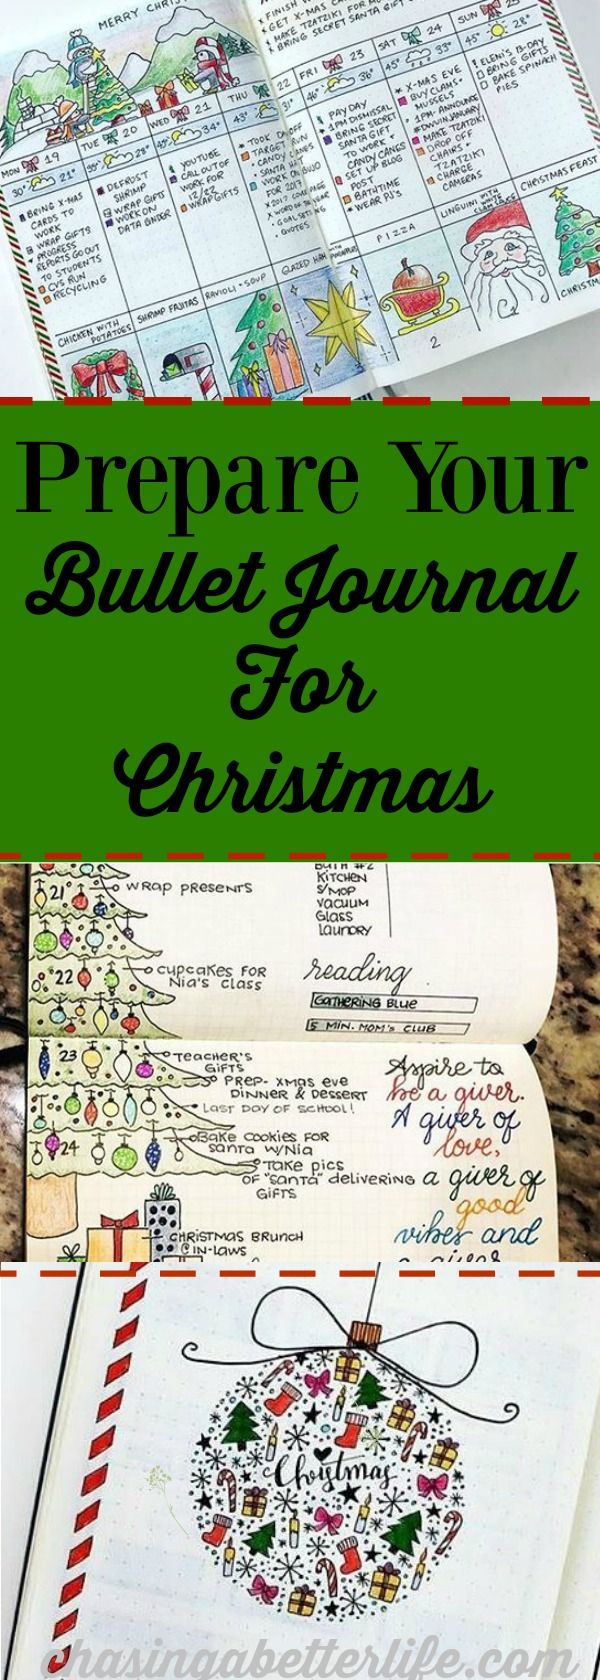 Prepare your Bullet Journal for Christmas